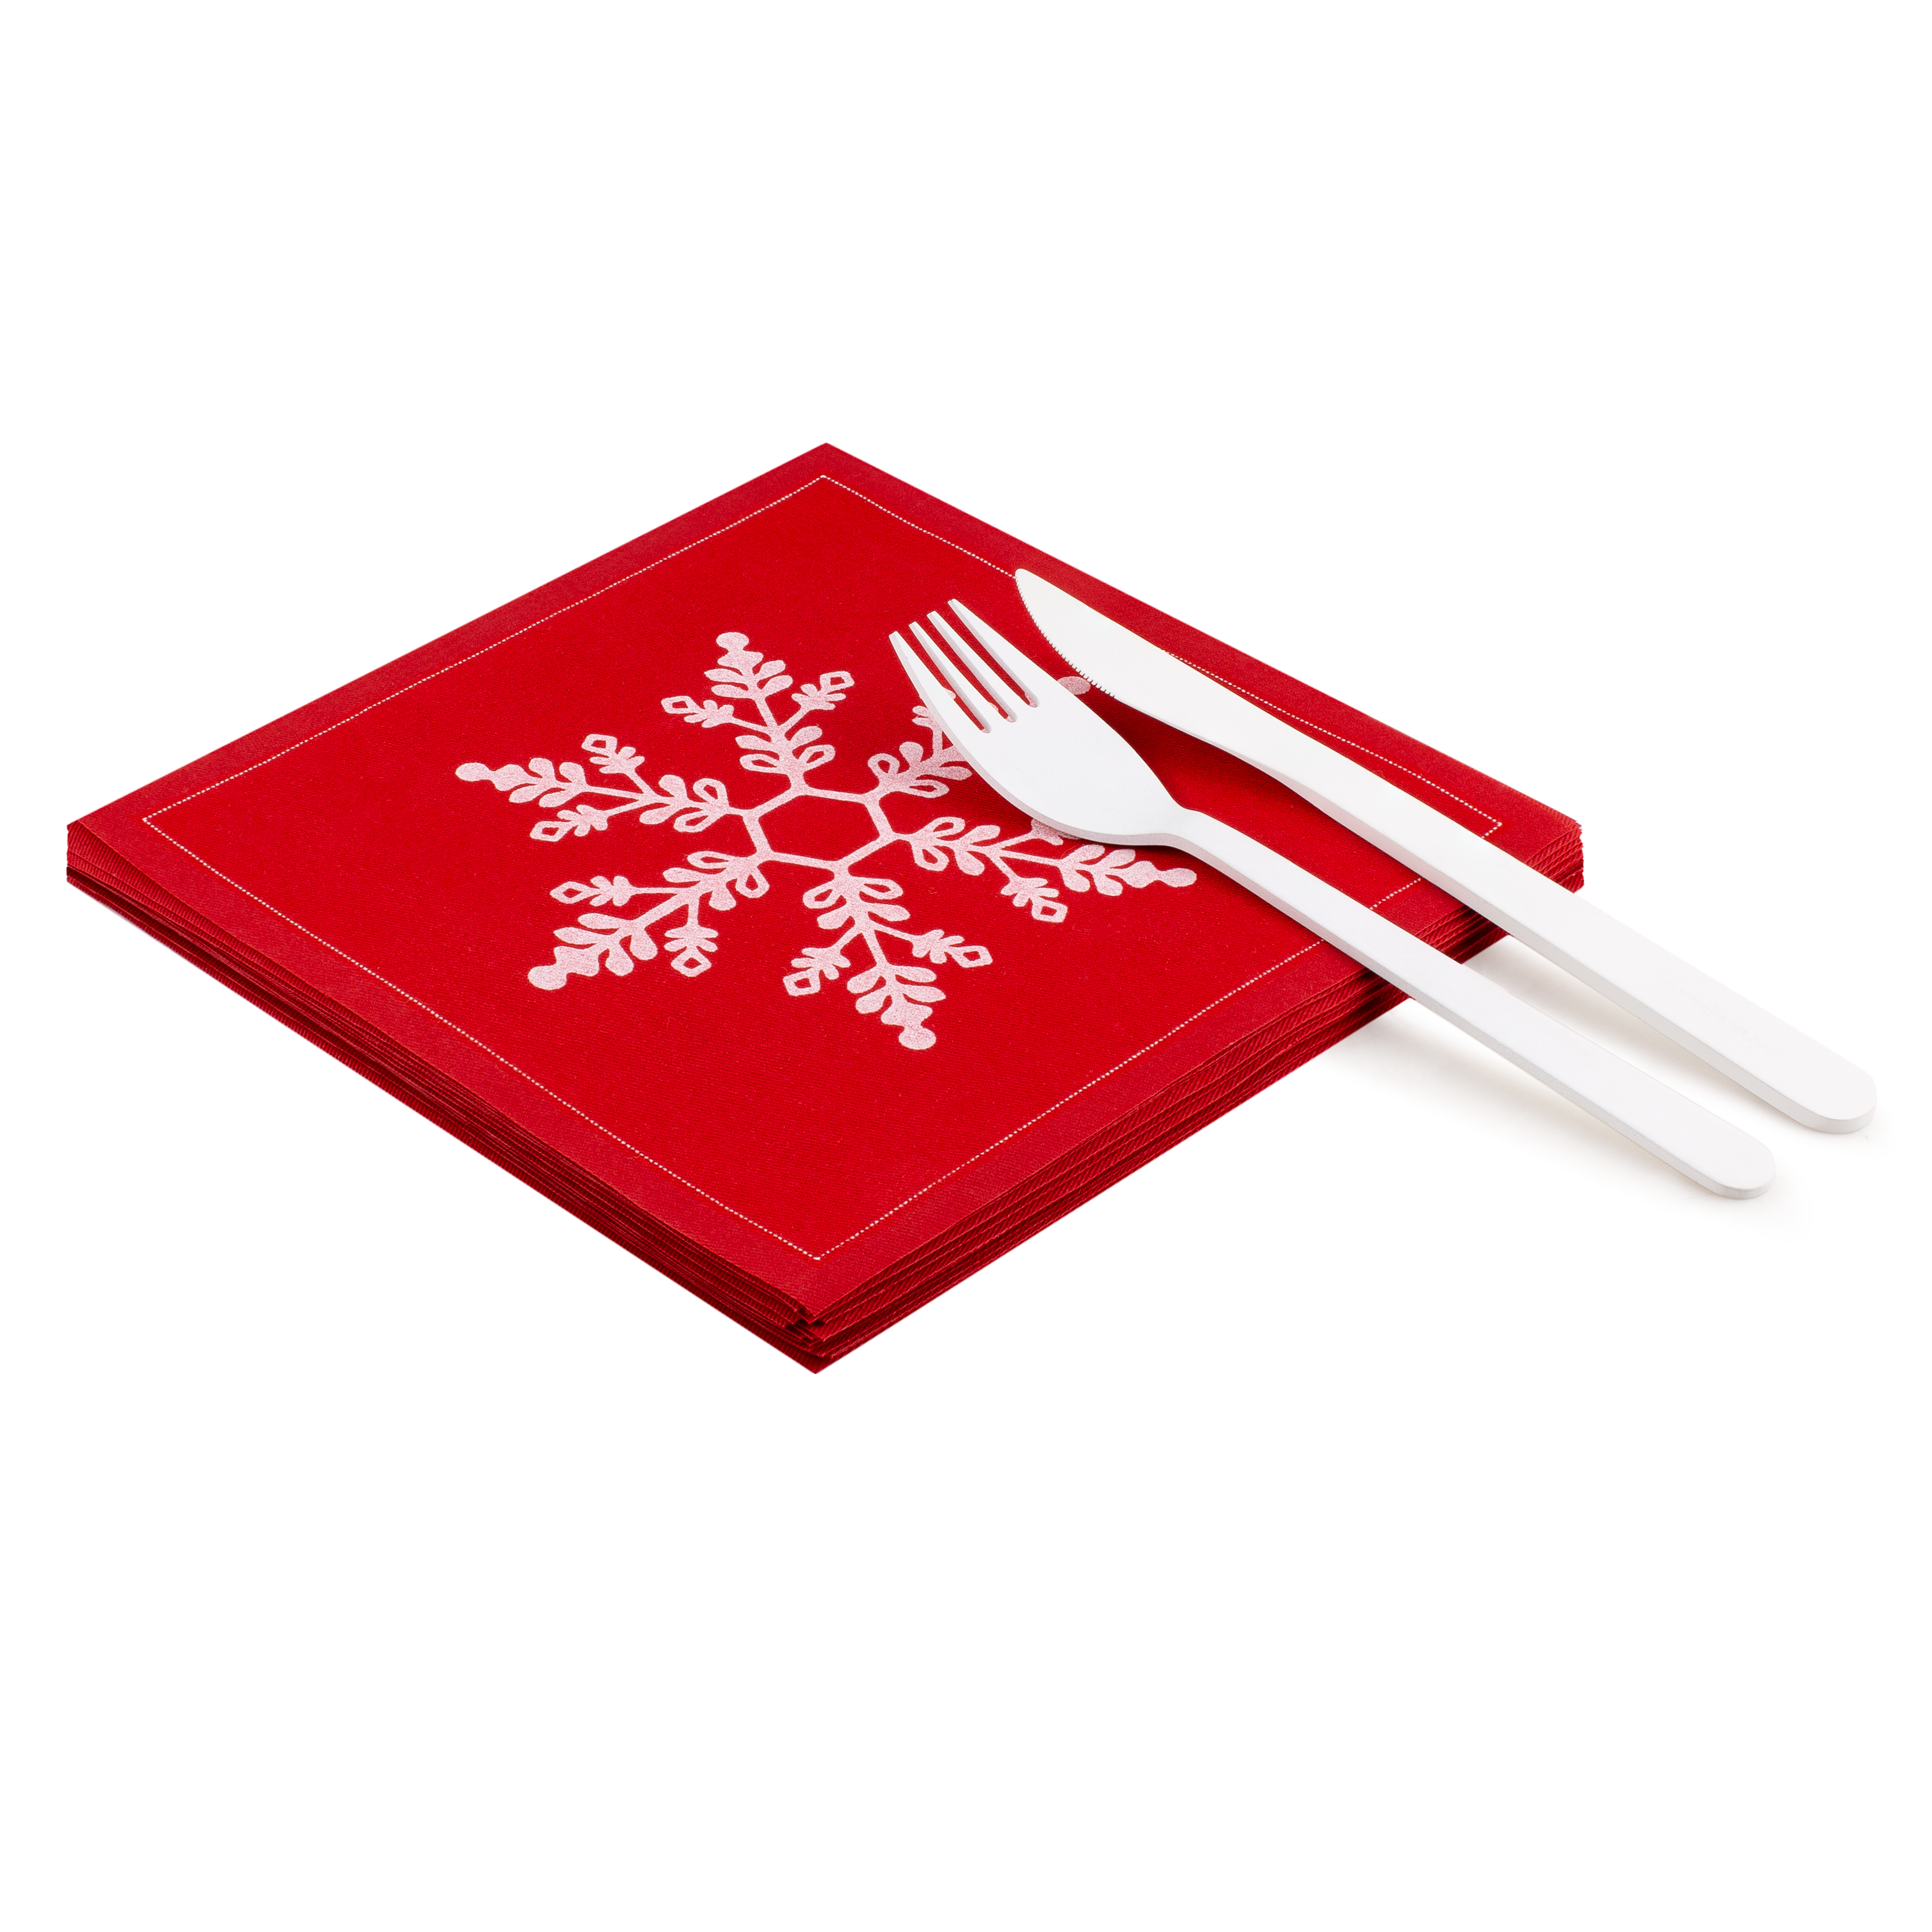 "Snowflake Red Cotton Luncheon - 8"" x 8"" - 250 units"